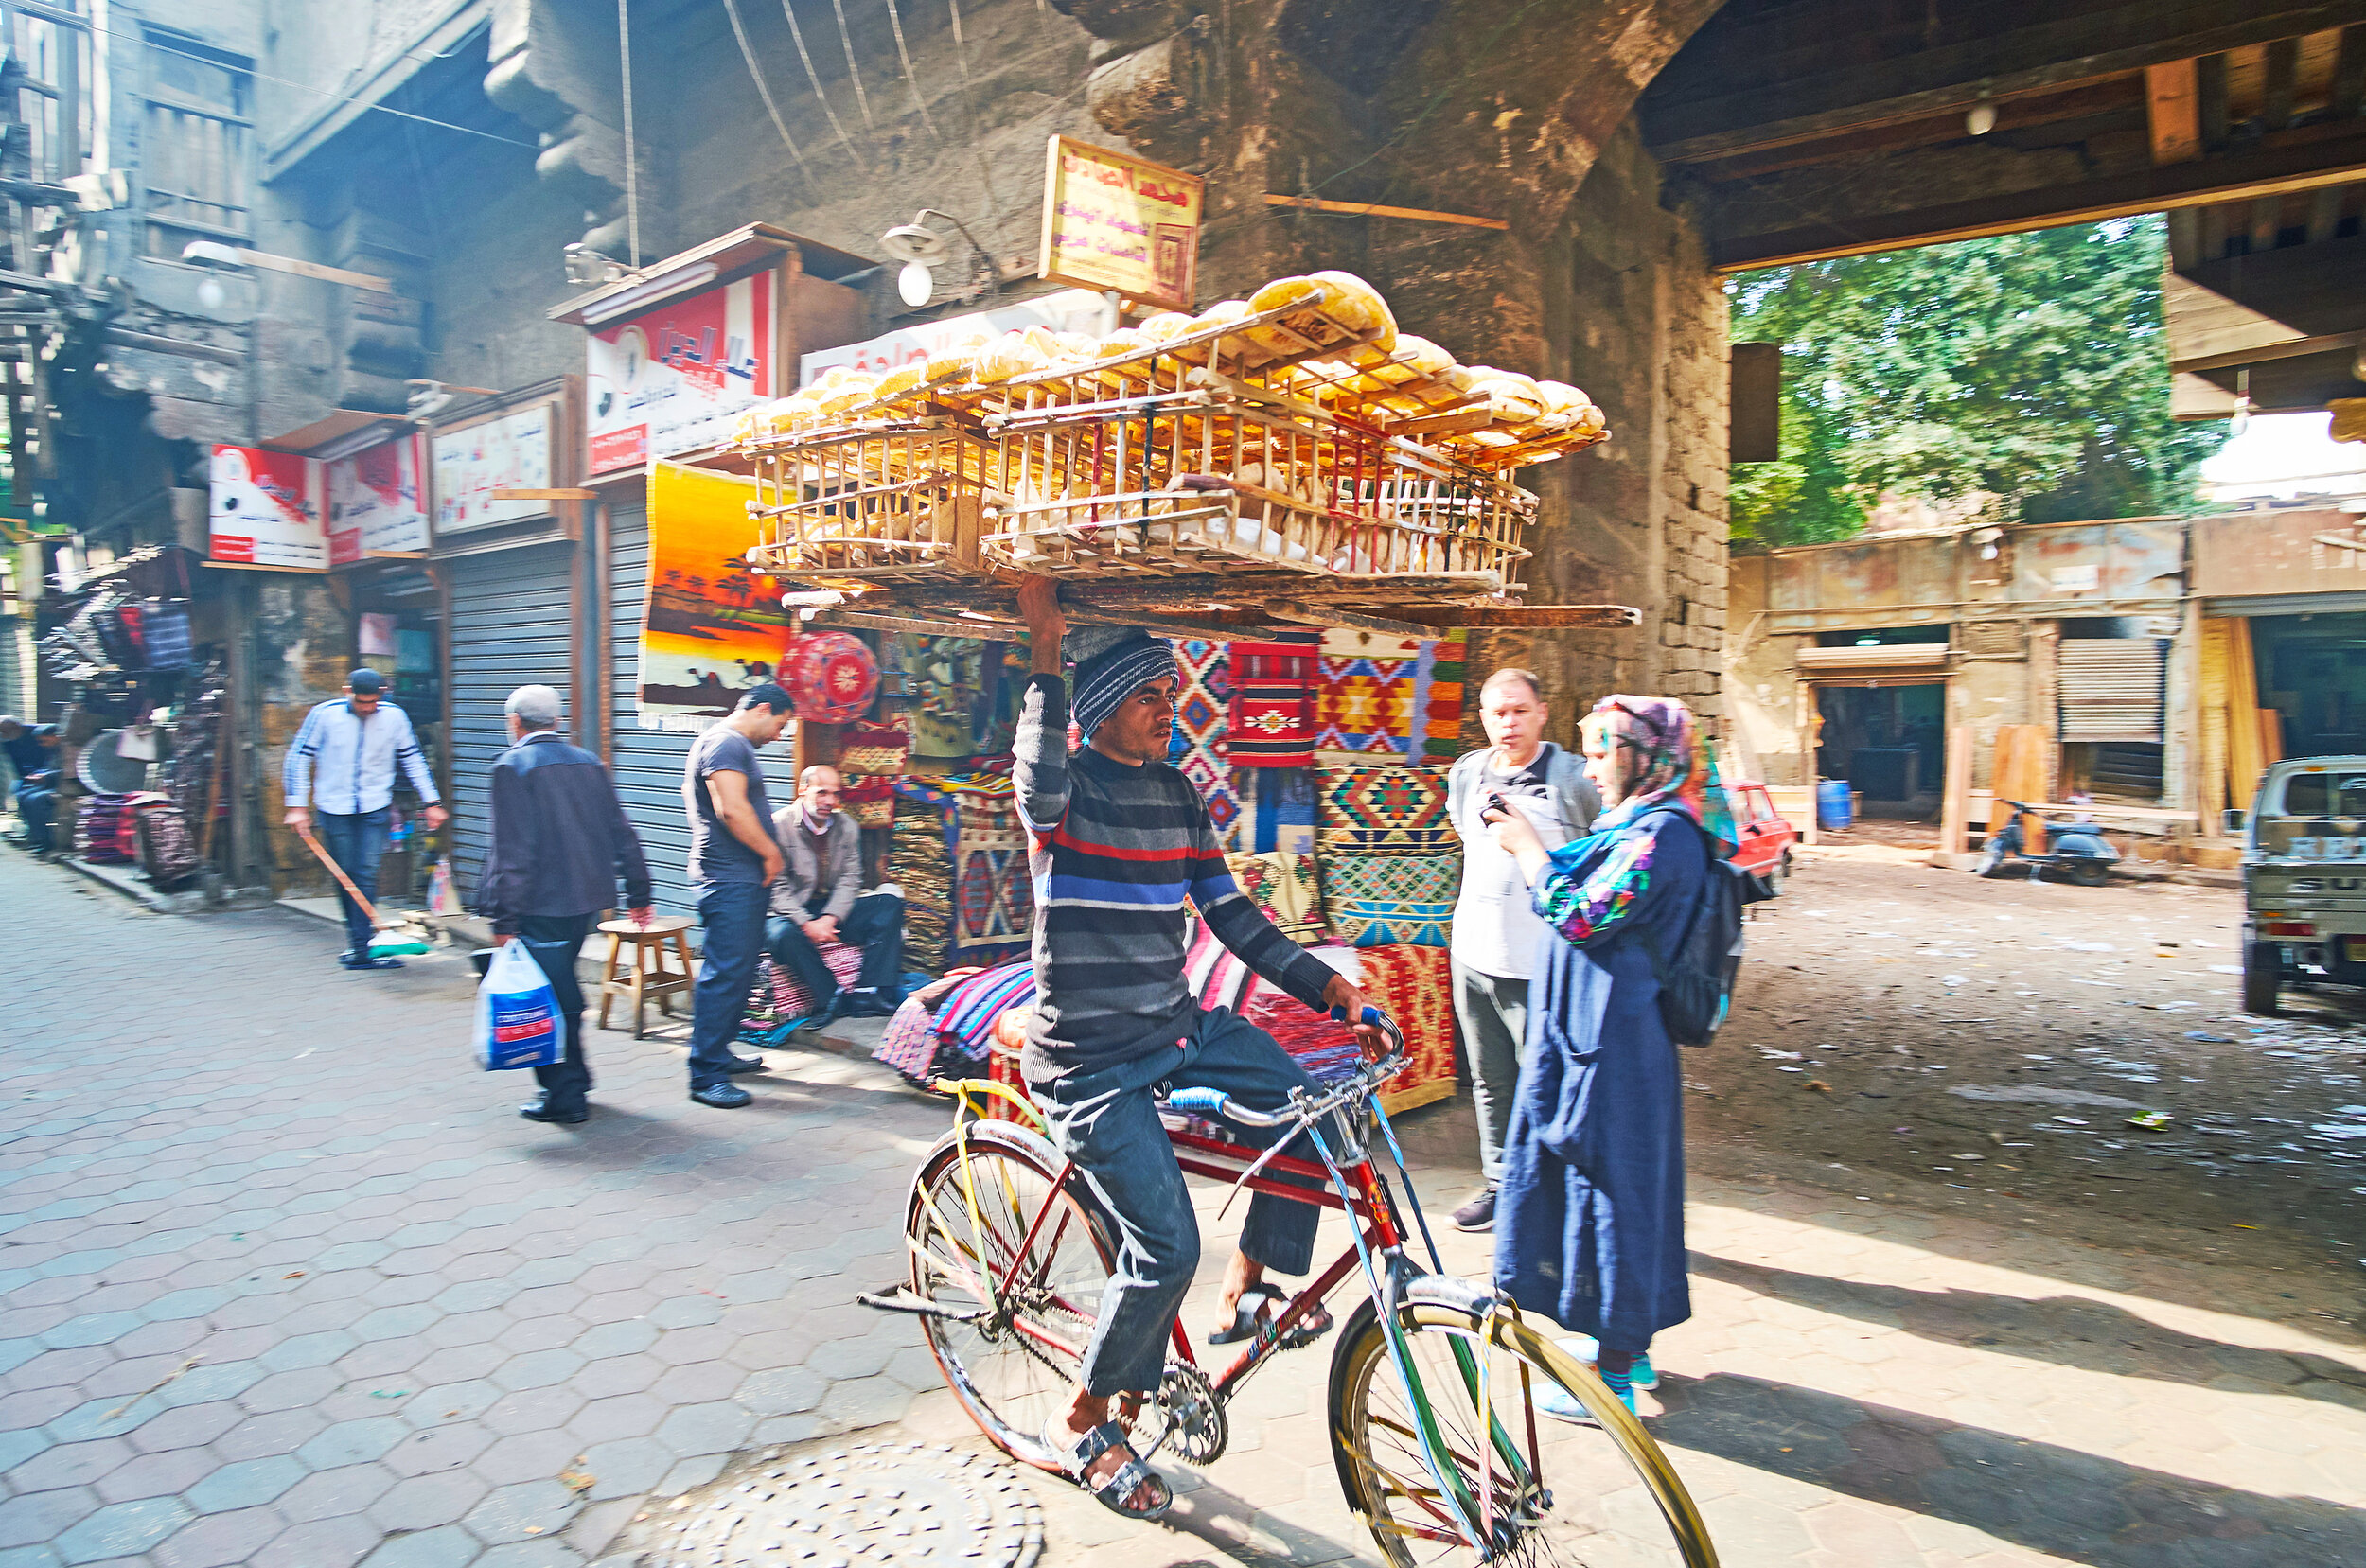 Egyptian street food vendor riding a bike in Cairo.